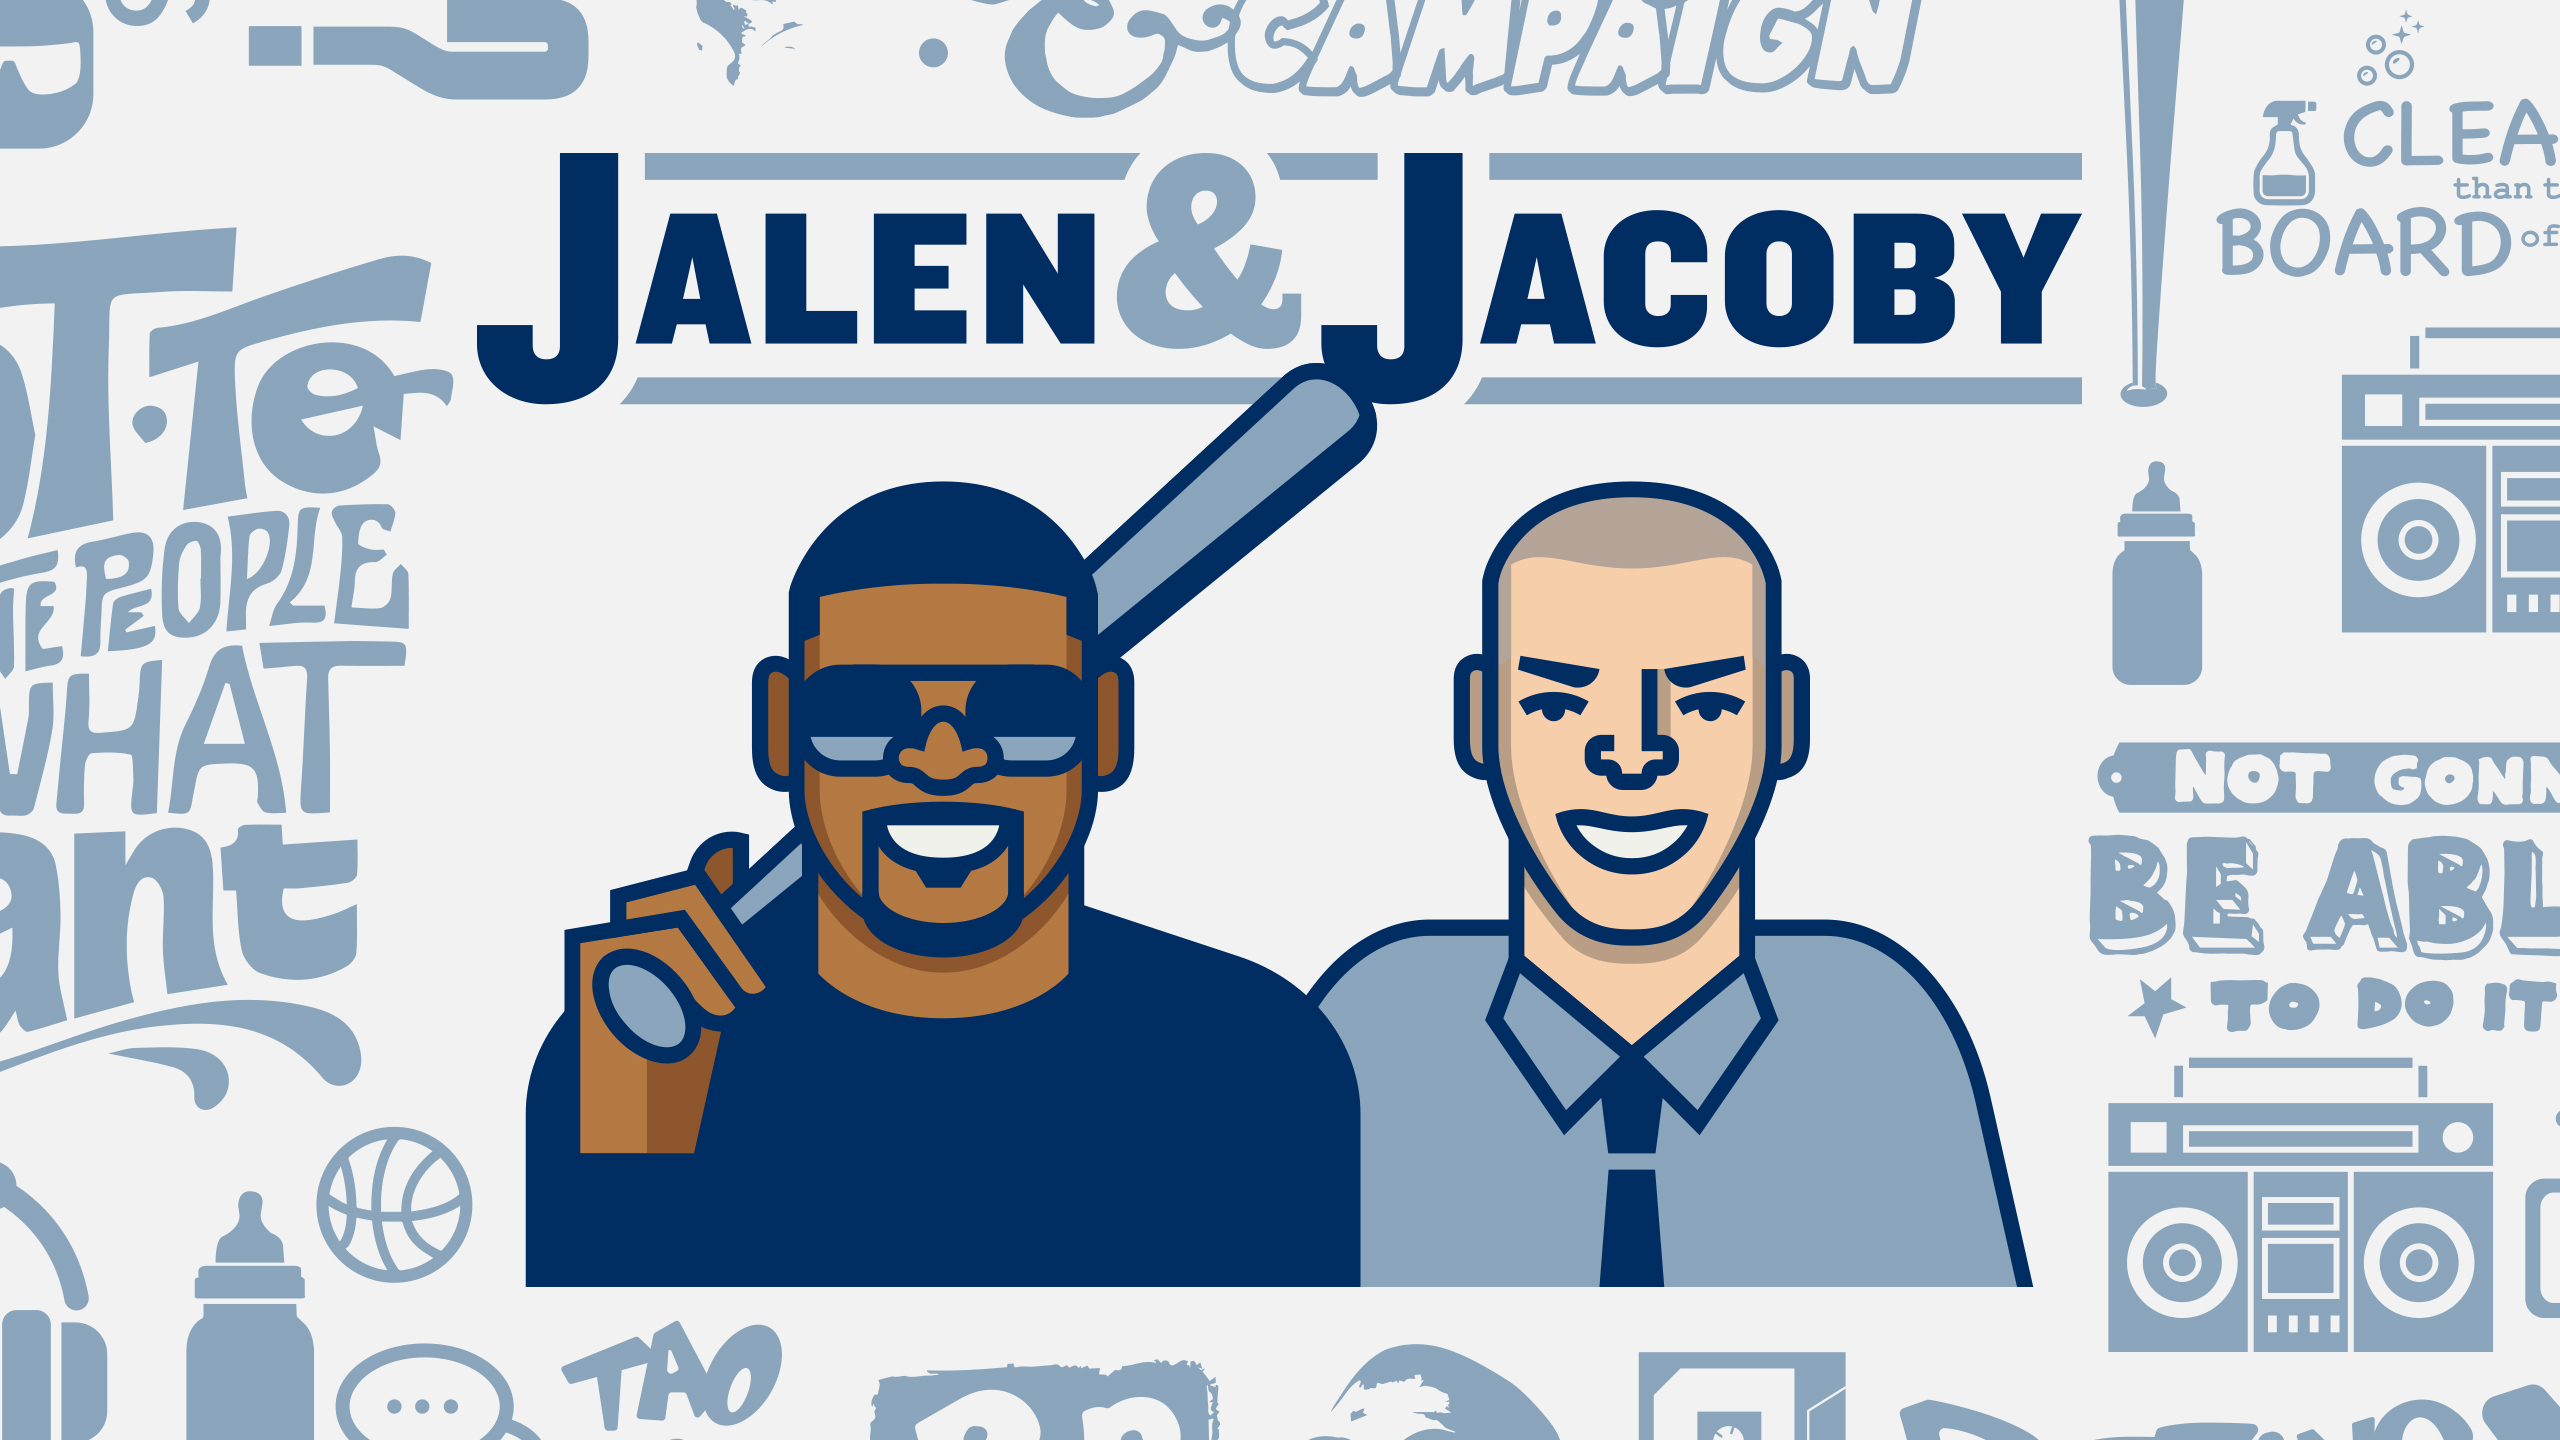 Wed, 3/20 - Jalen & Jacoby